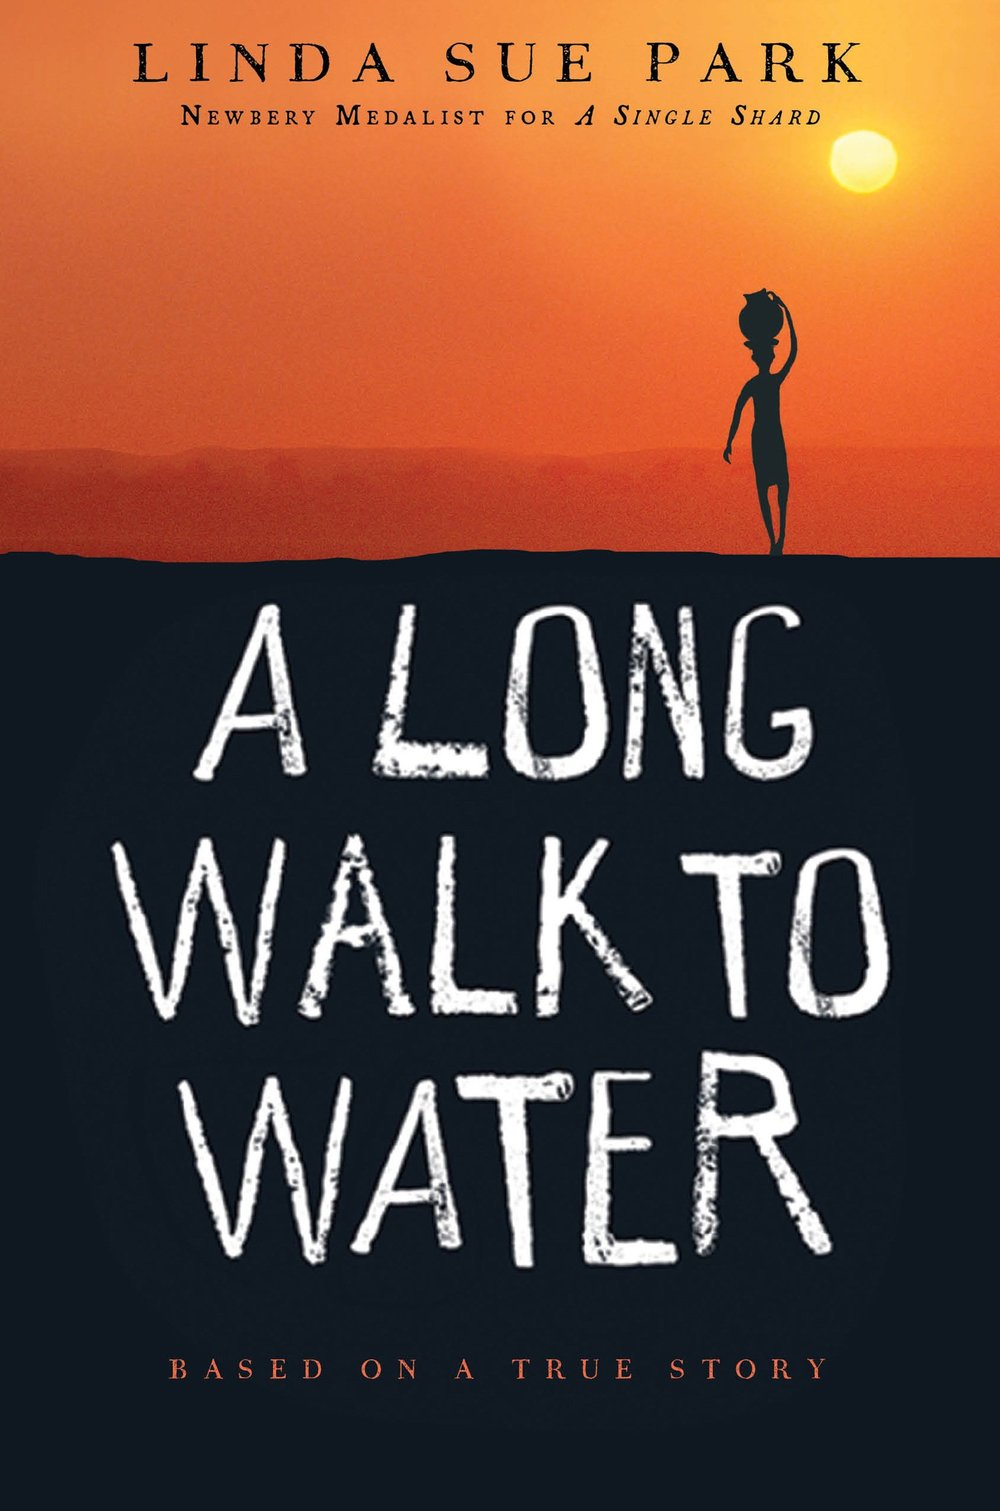 The Long Walk    to Water  by Linda Sue Park